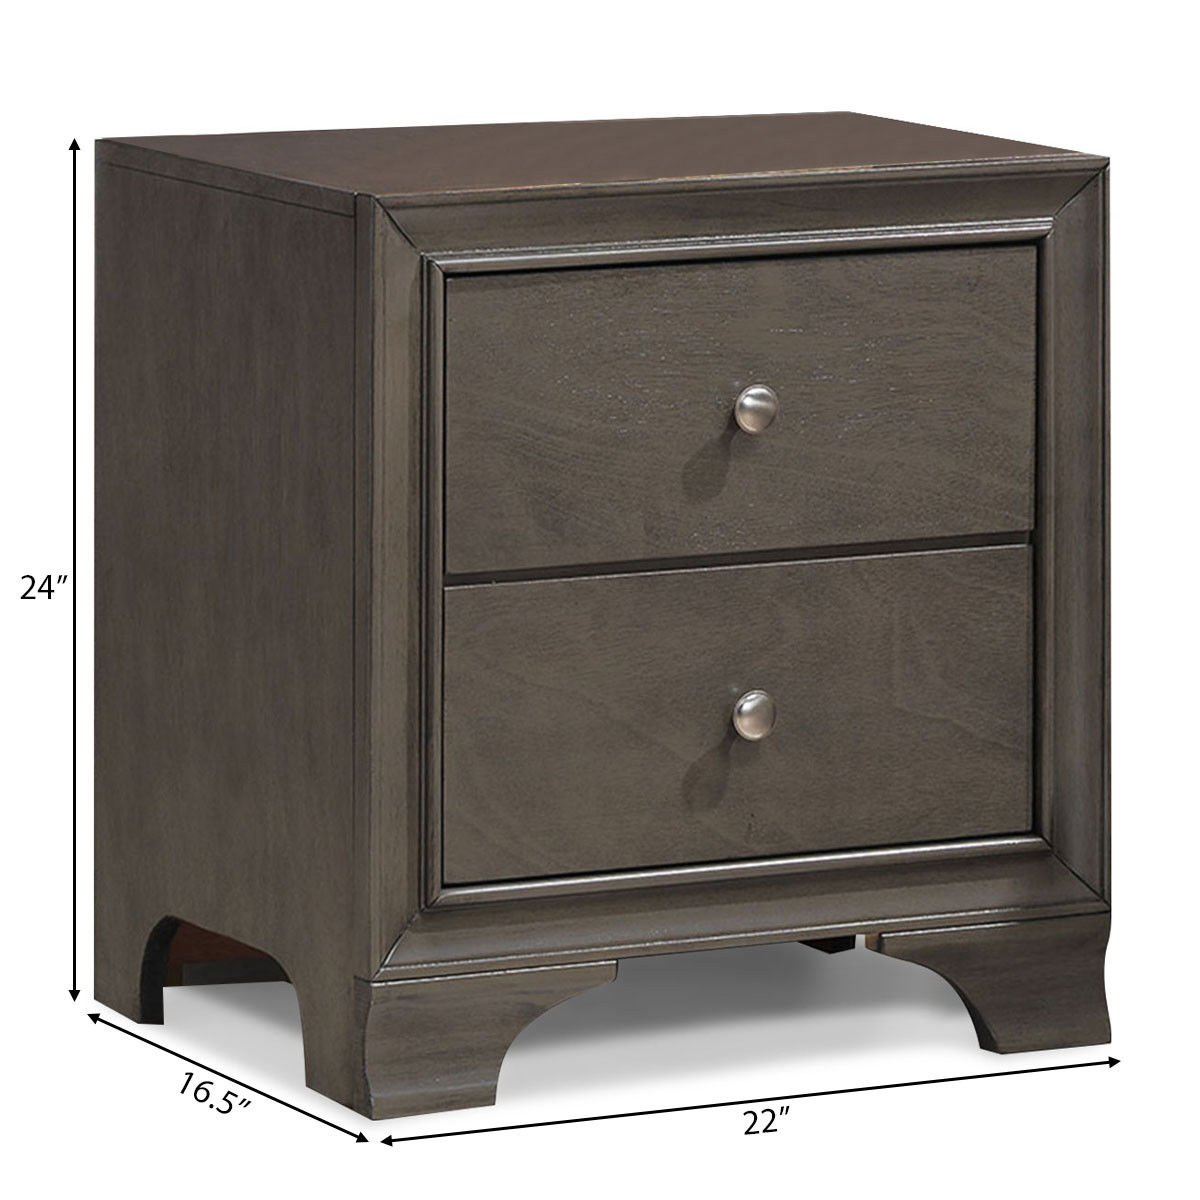 Gymax 2PCS 2 Drawers Nightstand Sofa Side End Table Storage Furniture W/USB Port Gray - image 4 of 10